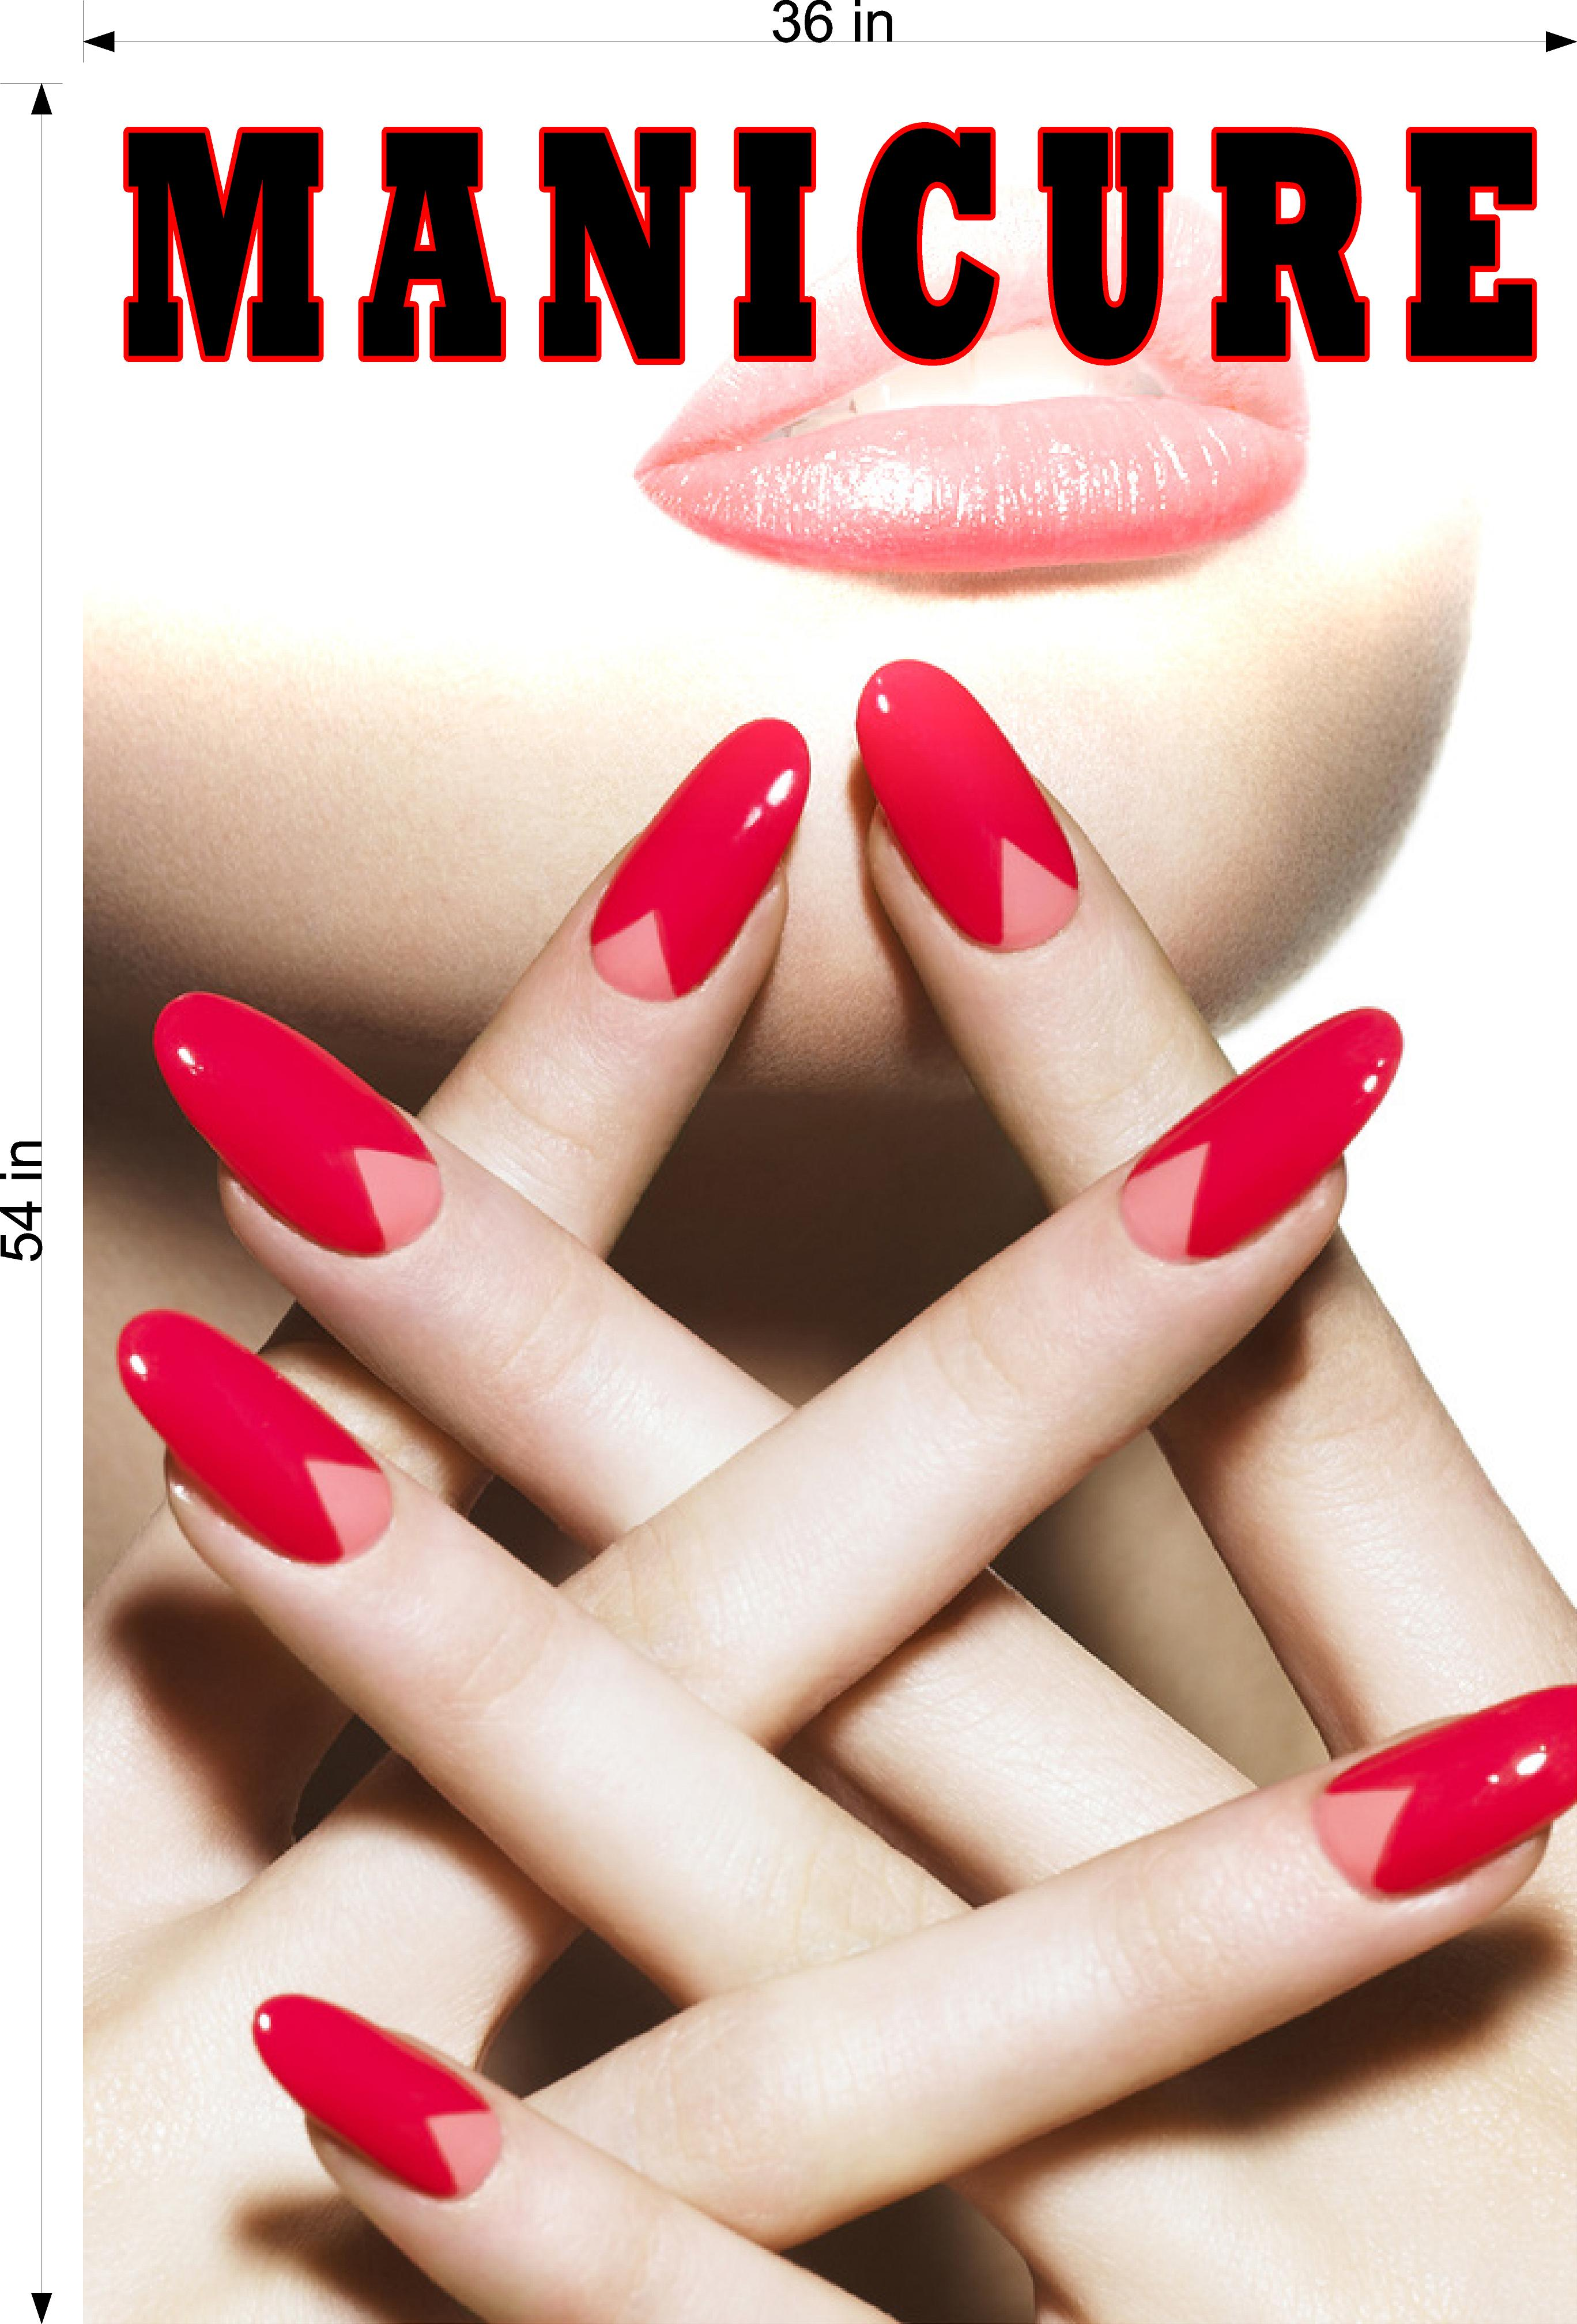 Manicure 14 Photo-Realistic Paper Poster Premium Matte Interior Inside Sign Advertising Marketing Wall Window Non-Laminated Vertical